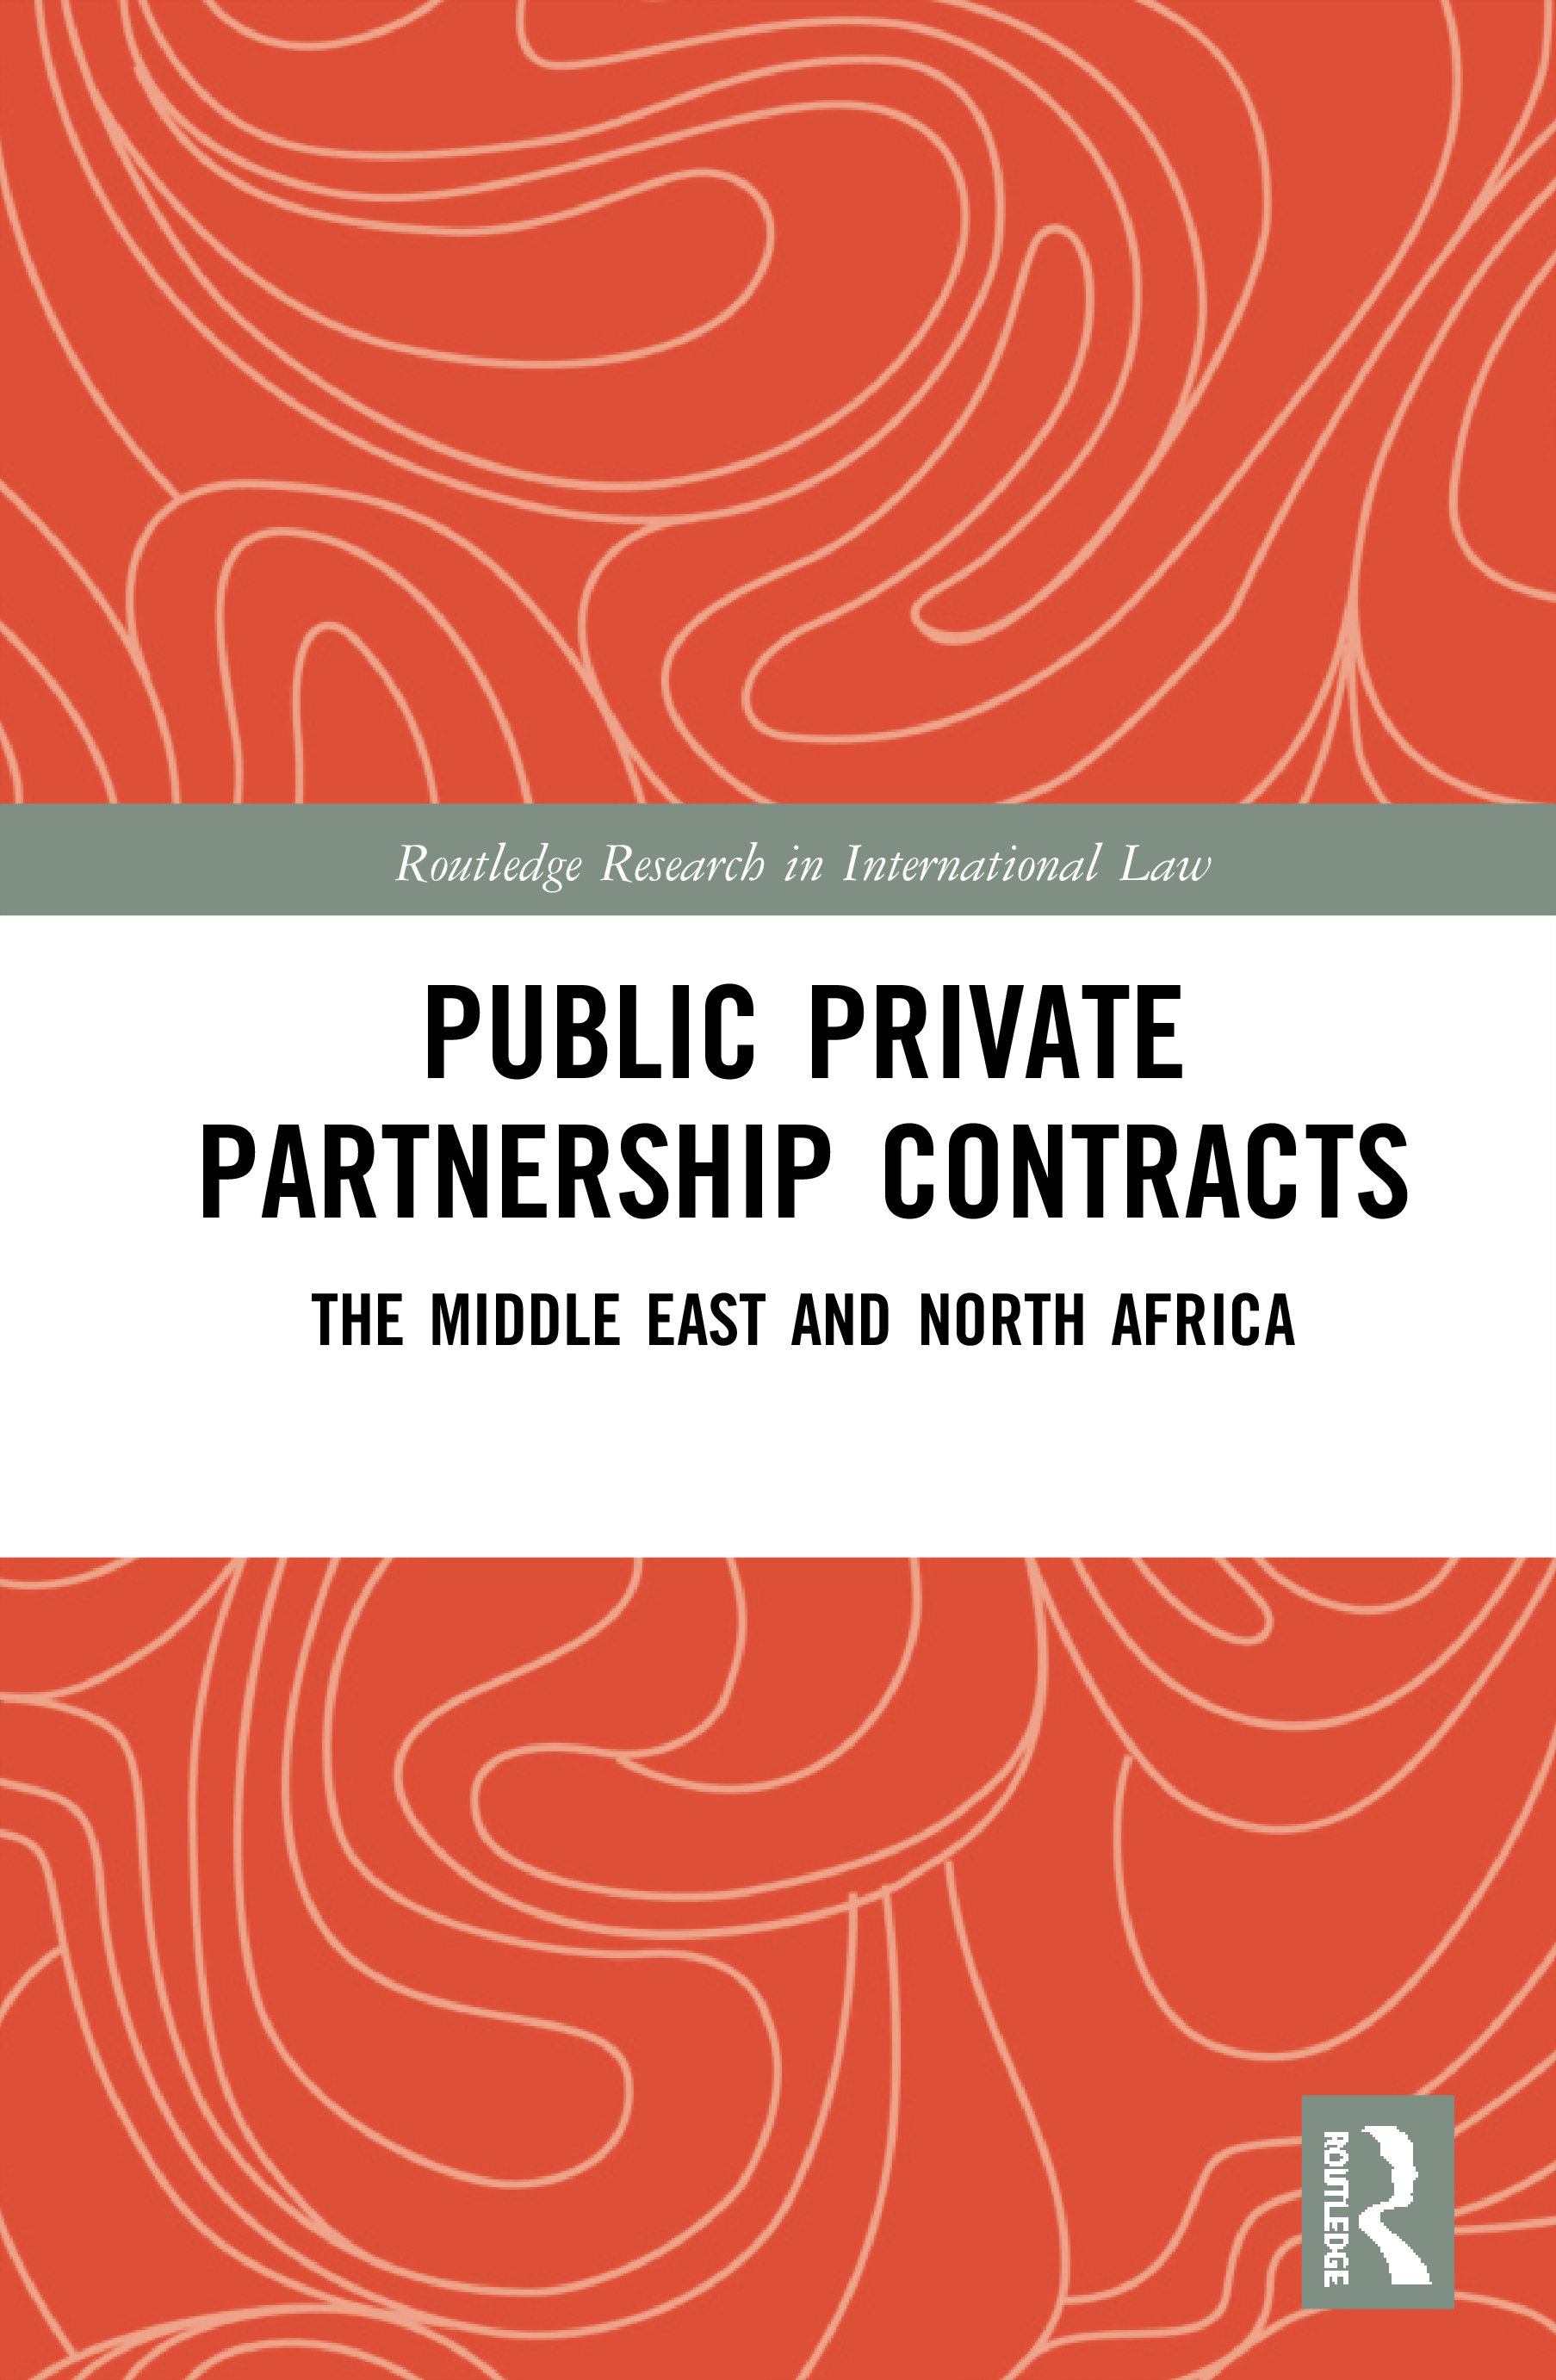 Public Private Partnership Contracts: The Middle East and North Africa book cover